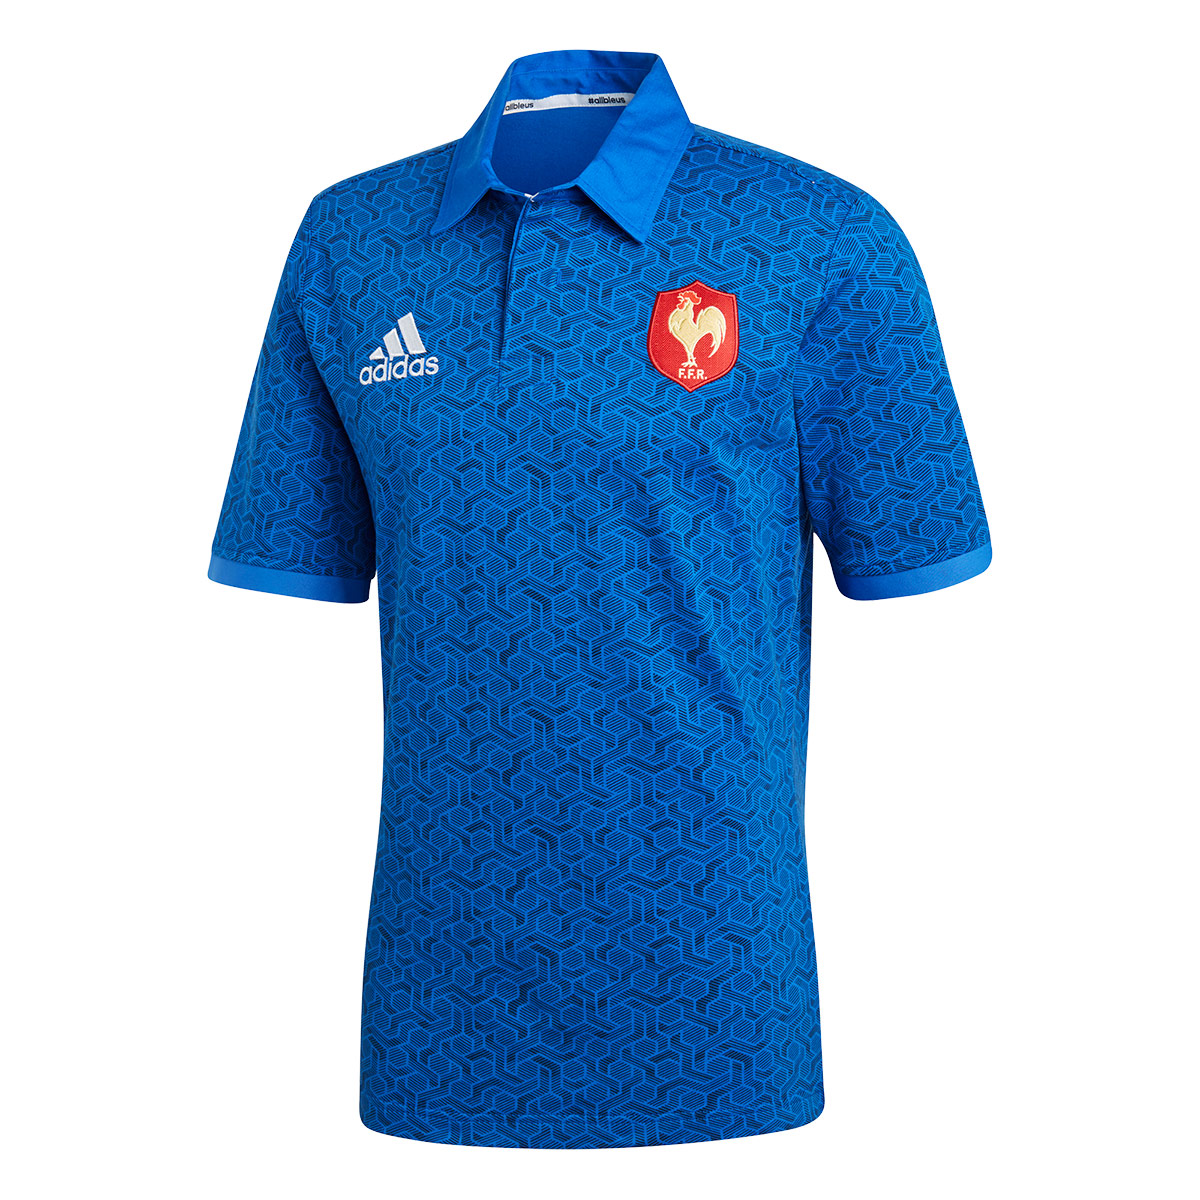 0126b641f39 2018 Mens France Supporters Home Rugby Shirt (Short Sleeved ...